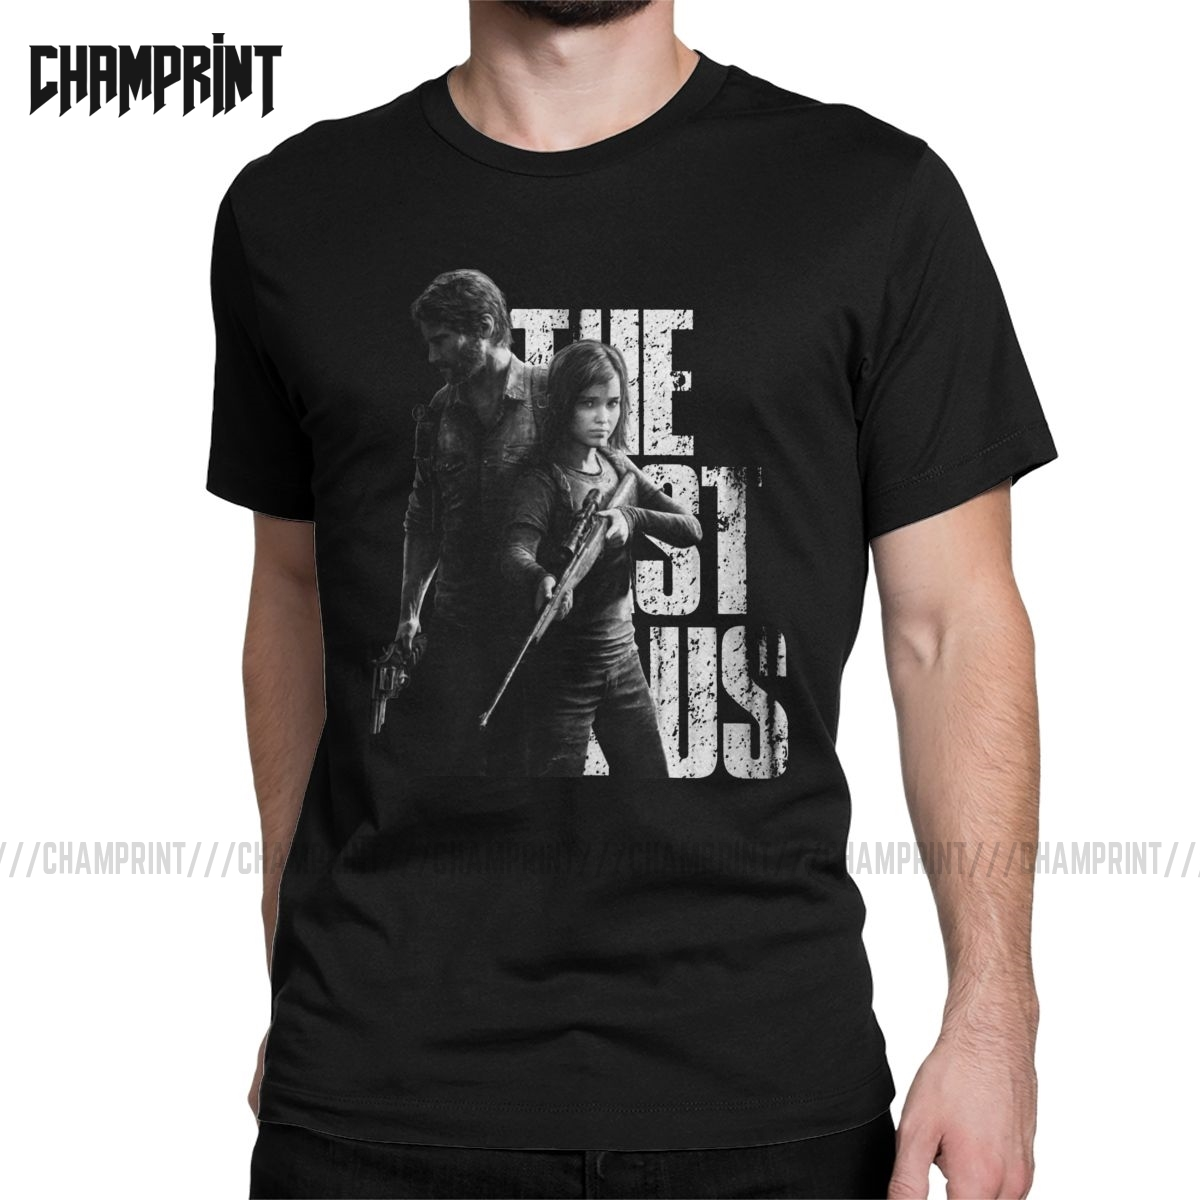 Vintage The Last Of Us Ellie And Joel T-Shirt For Men Cotton T Shirts Fireflies Tlou Video Game Short Sleeve Tee Shirt Plus Size